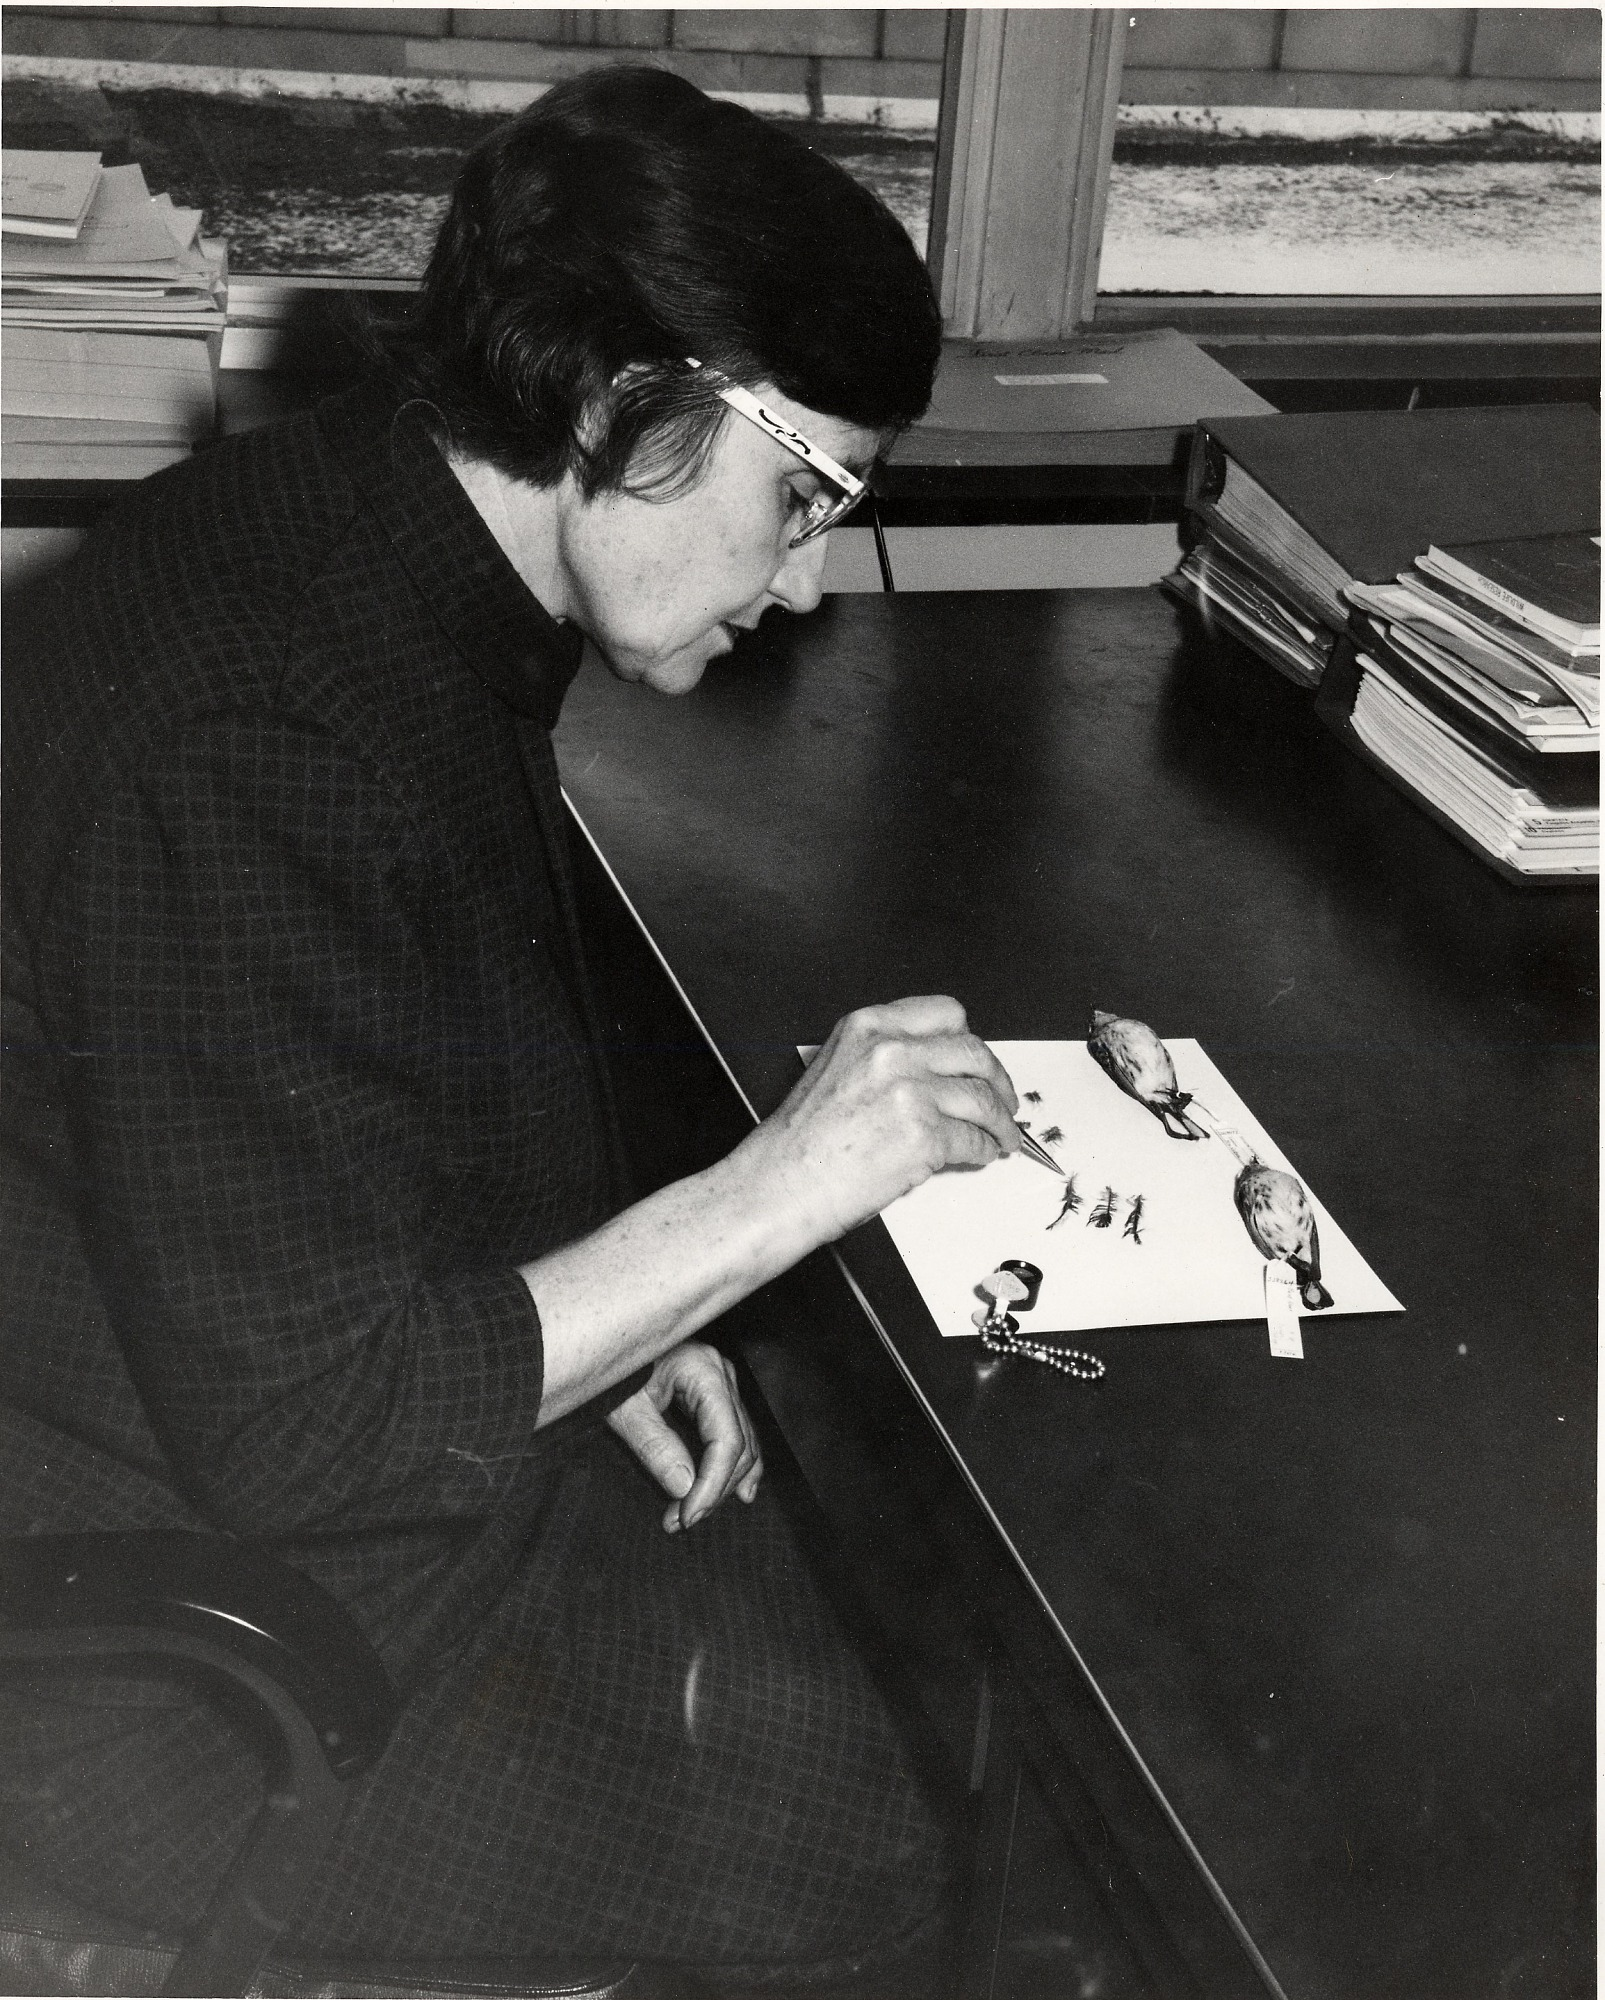 Roxie Collie S. Laybourne (1912-2003), identifying bird feathers, c. 1944